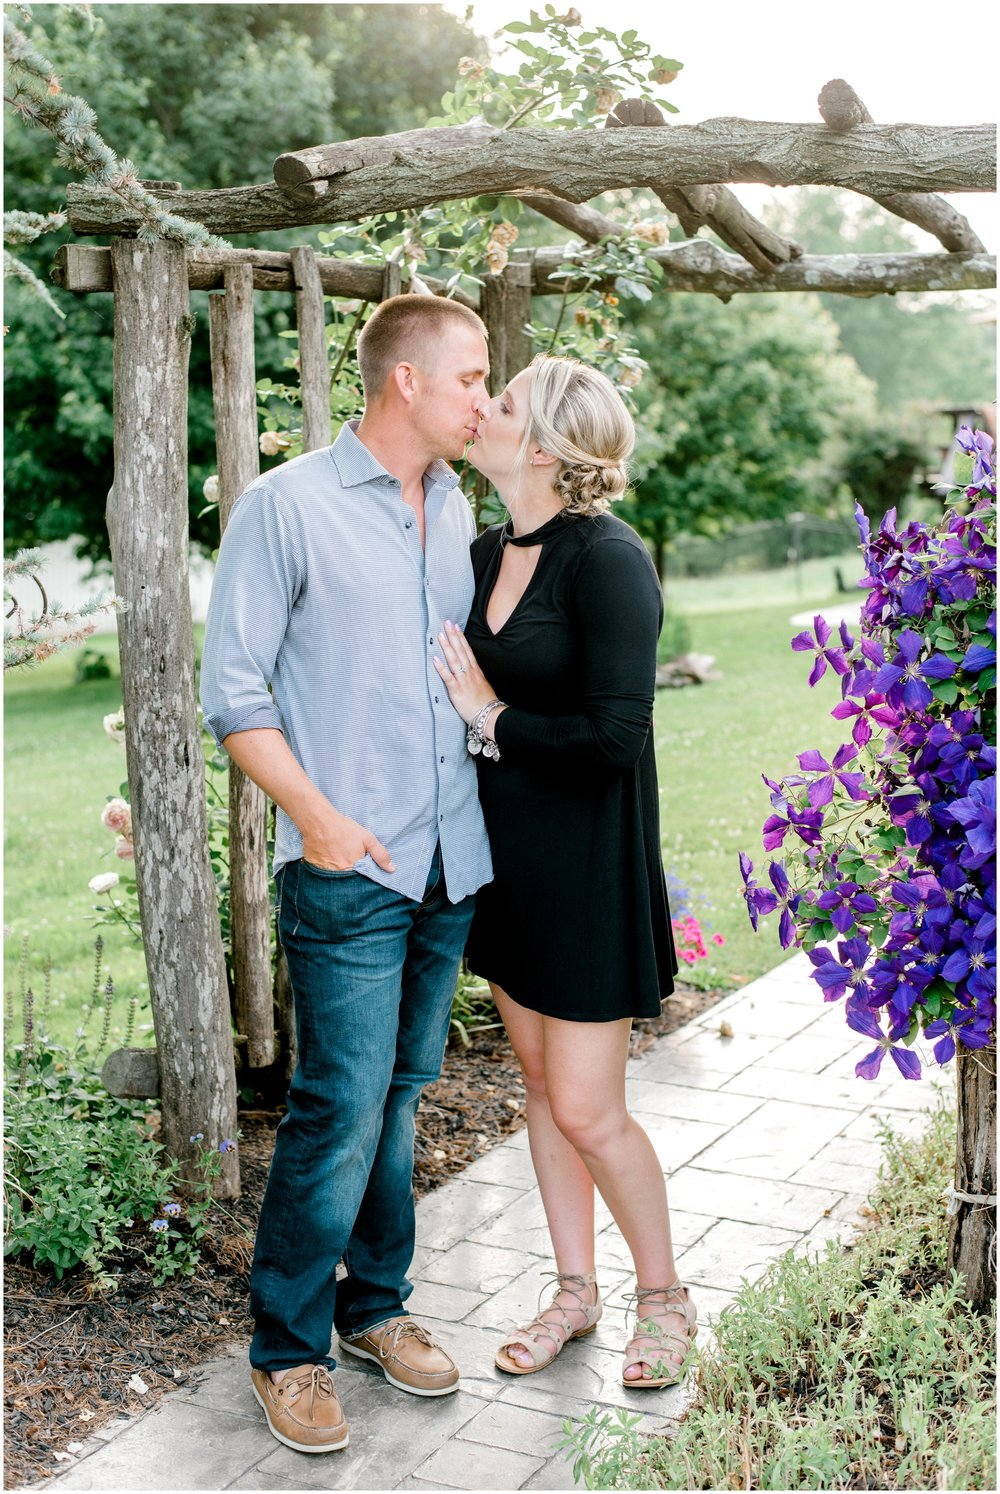 Summer Private Farm Engagement Session - Krista Brackin Photography_0011.jpg